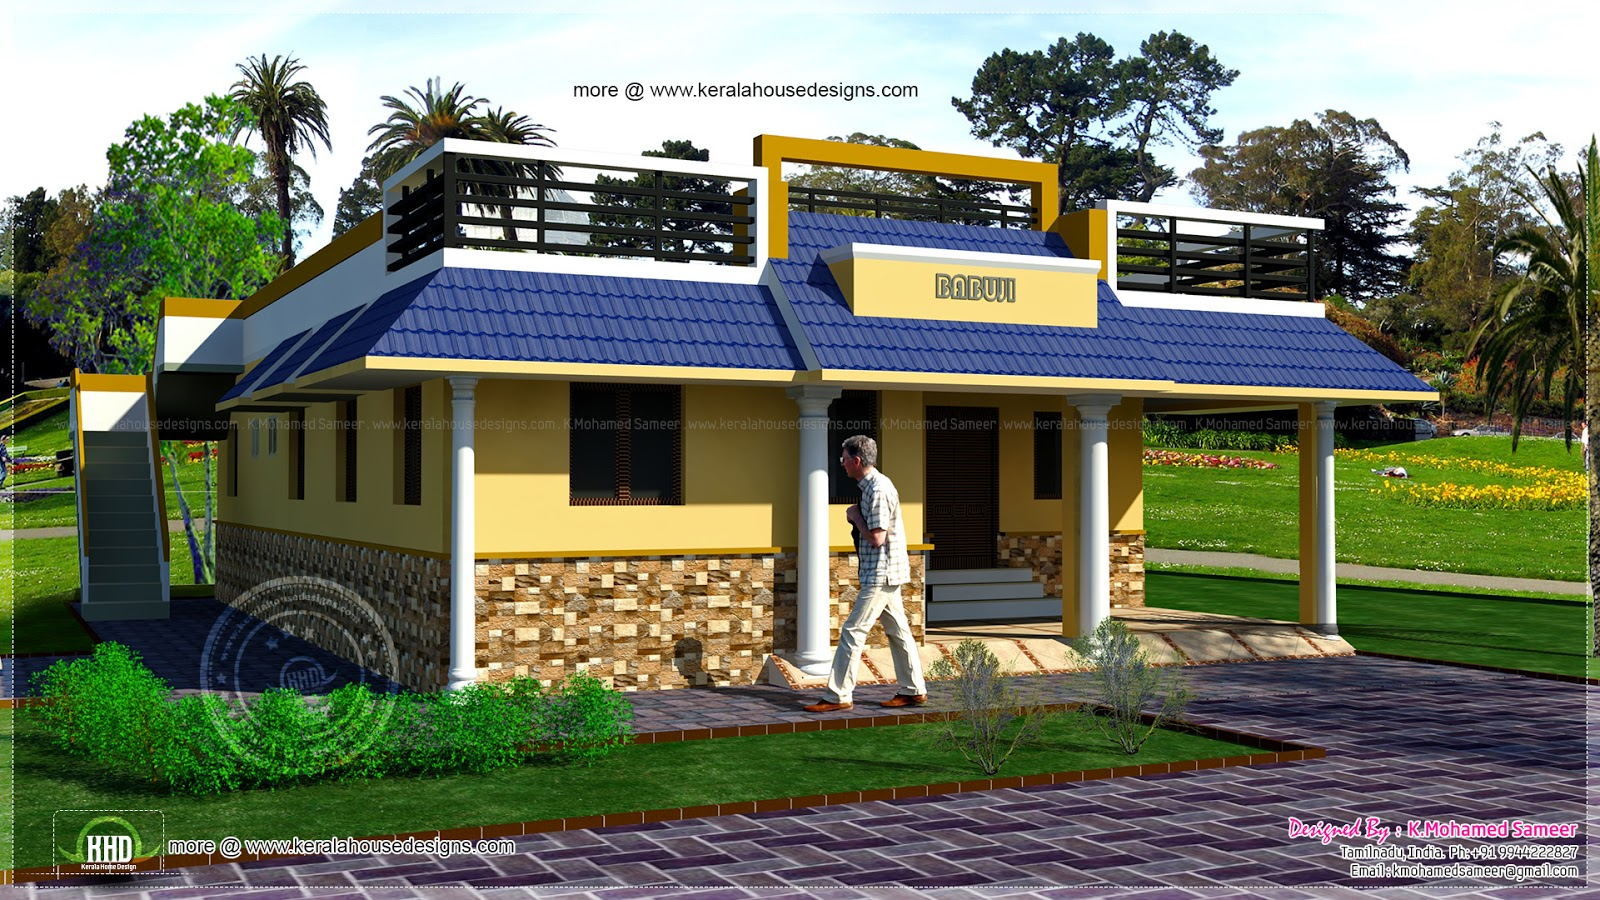 3 Bedroom Single Floor House Plan Kerala Home Design And Floor Plans